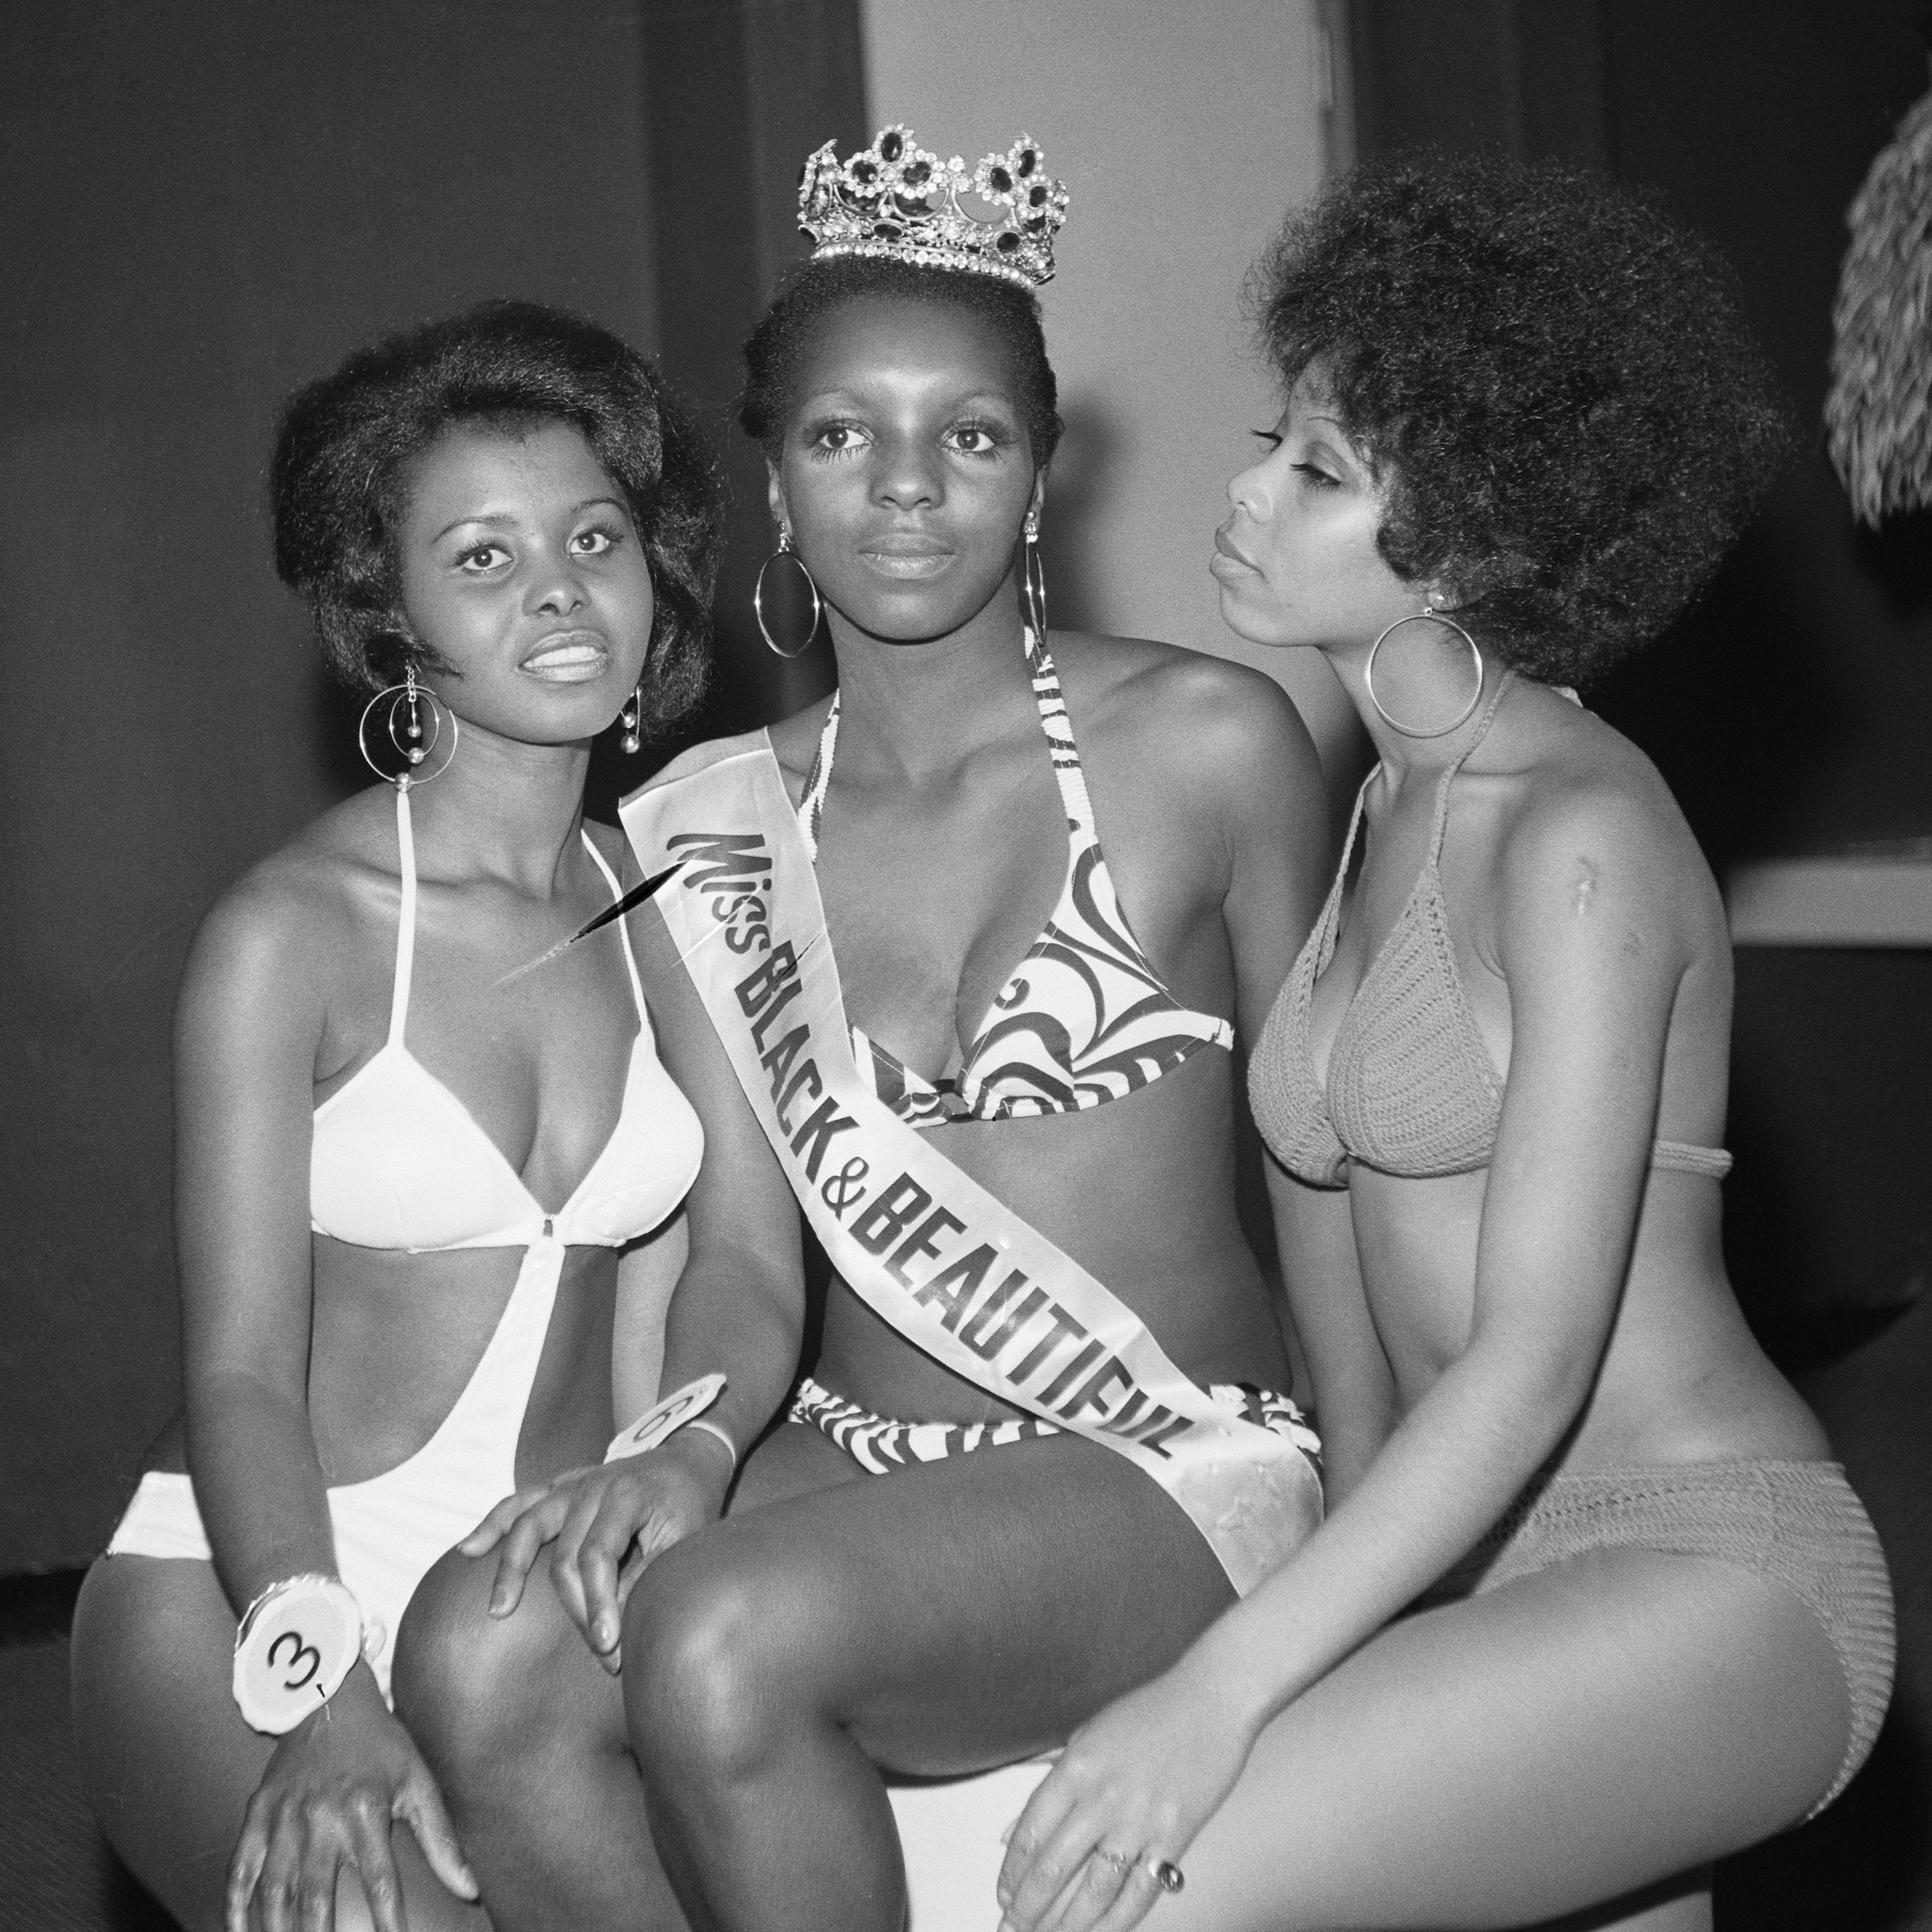 (Unidentified) Miss Black & Beautiful with fellow contestants ,London, Hammersmith Palais, 1970s.From the portfolio 'Black Beauty Pageants'.Courtesy of © Raphael Albert/Autograph ABP